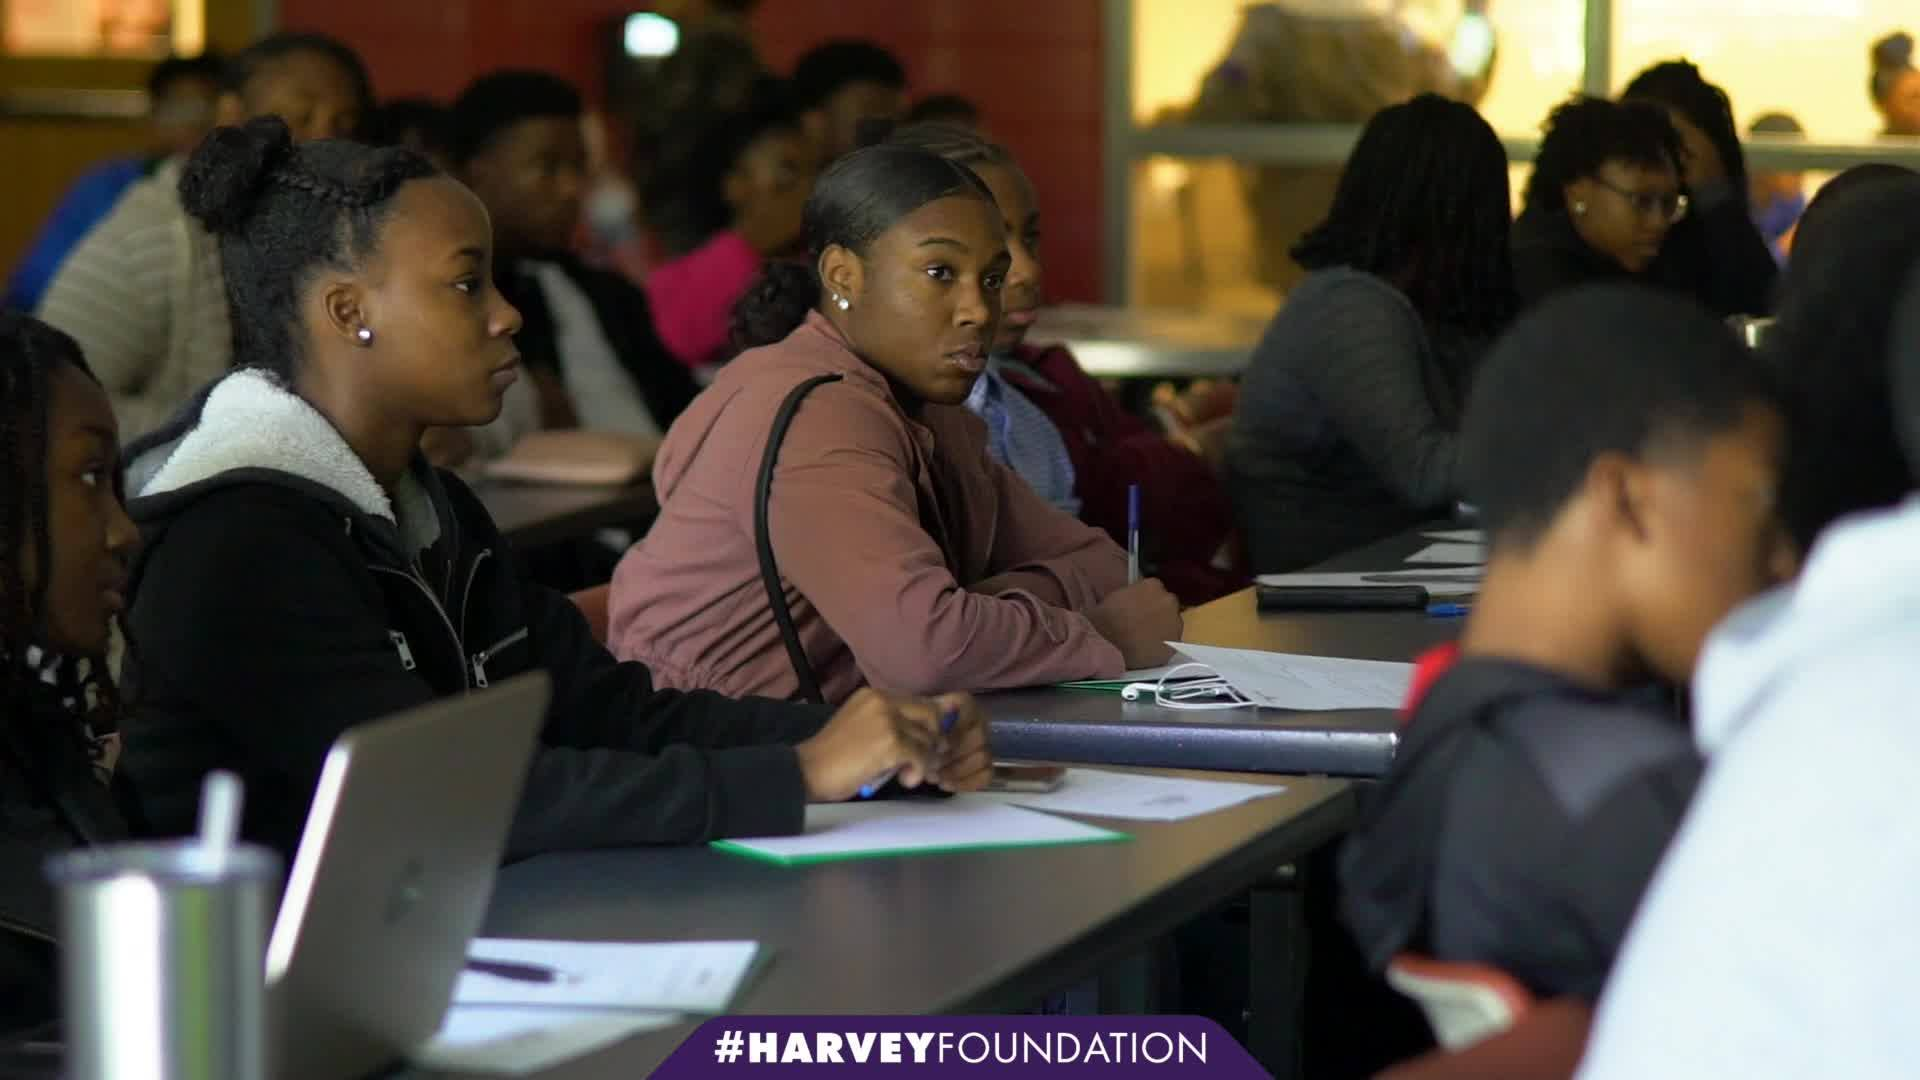 Next Step Education x Harvey Foundation